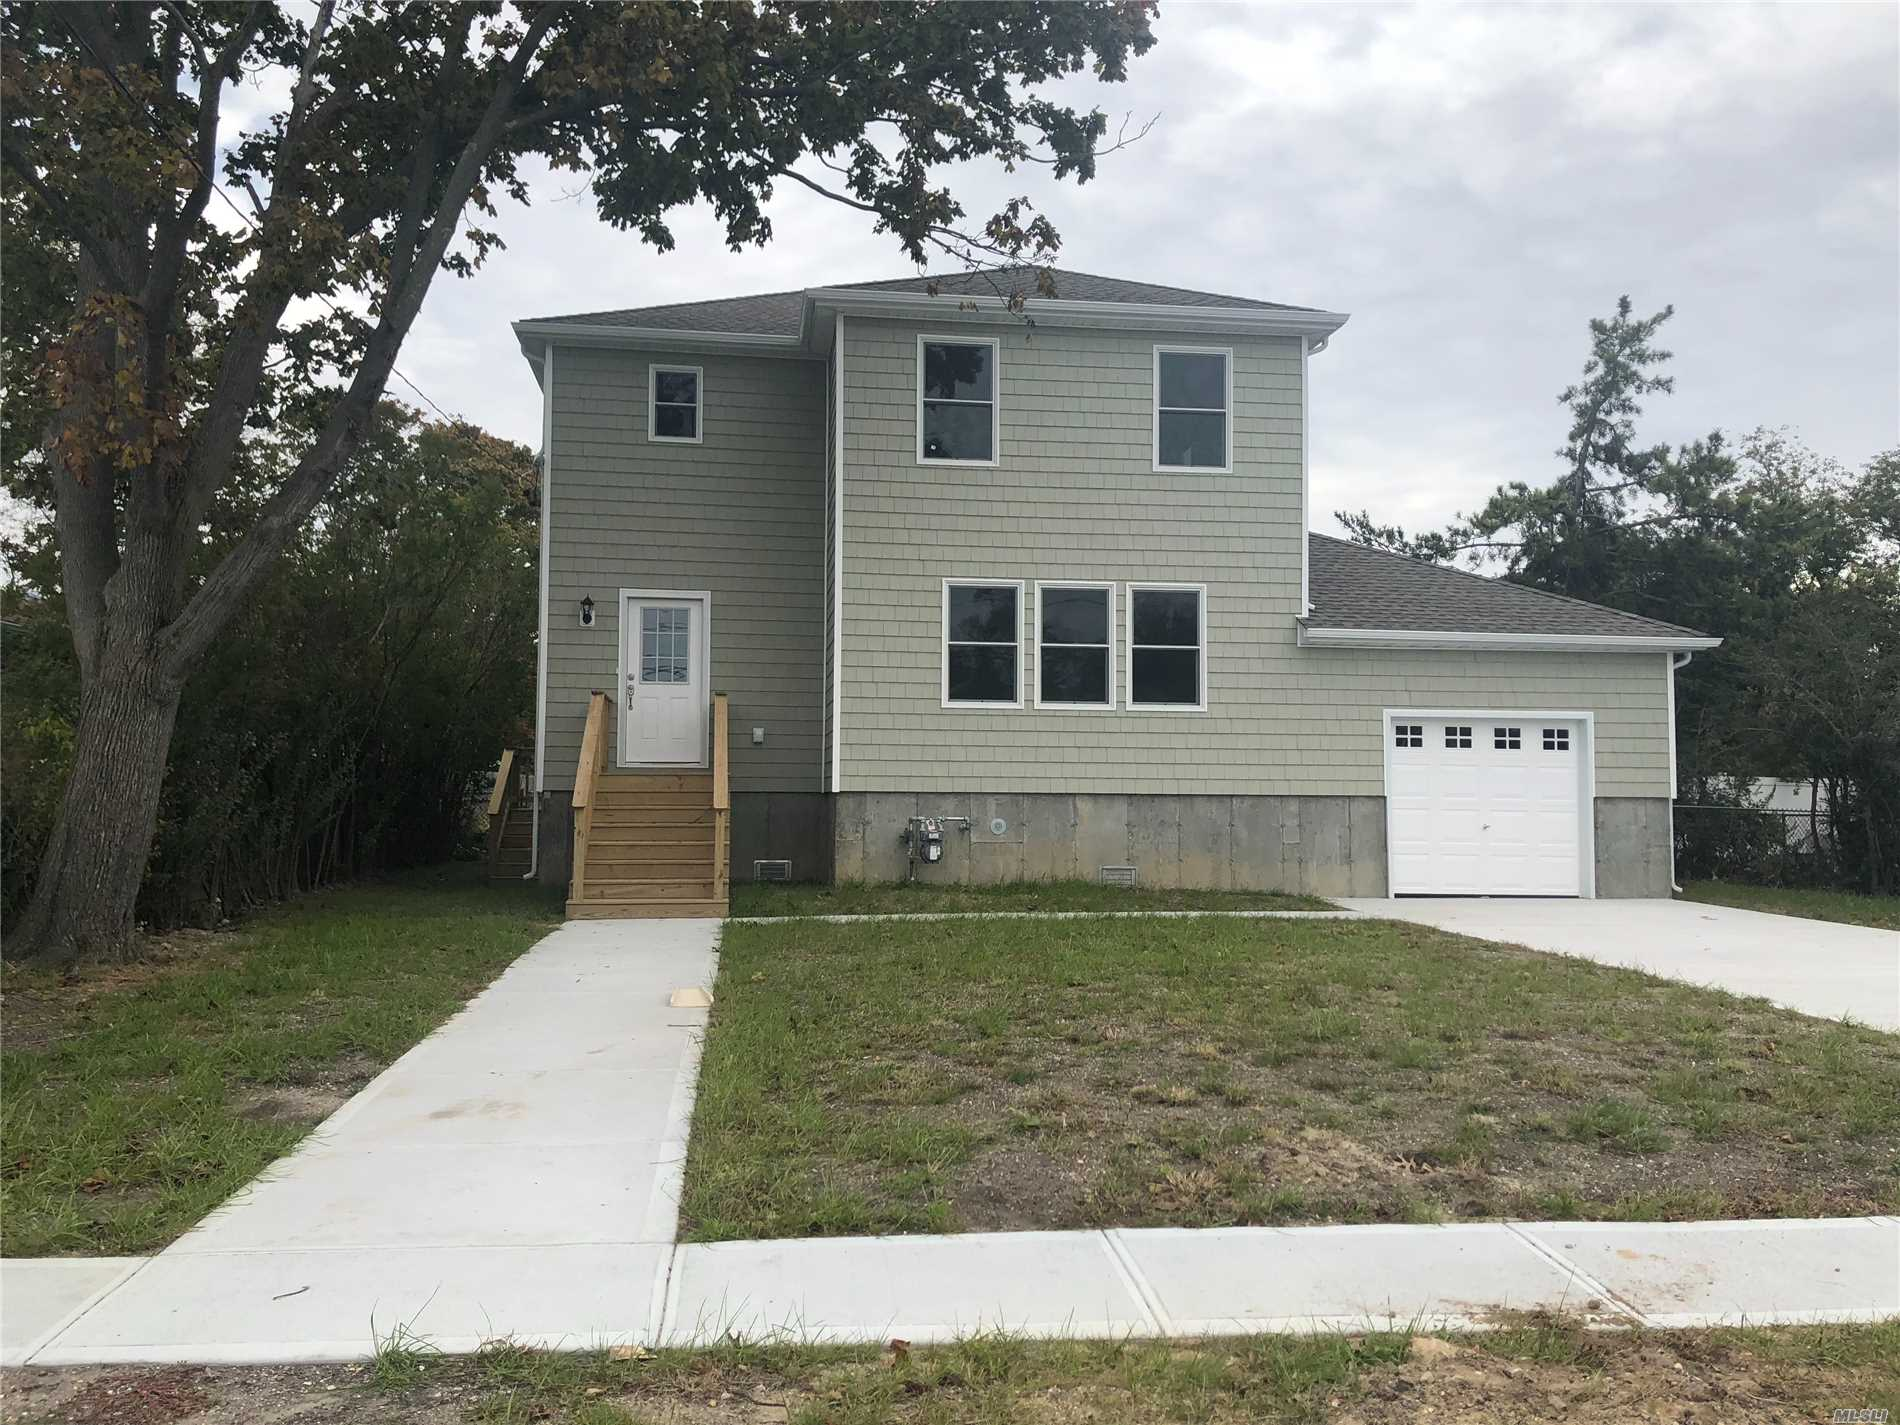 Newly Raised All New Colonial With Green Features. Entry Foyer And Large Country Kitchen, Livingroom, Dinning Room 4/5 Bedrooms, 2 Bathrooms And Garage. Cable Ready, Cac,  Large Property Fenced Rear Yard.